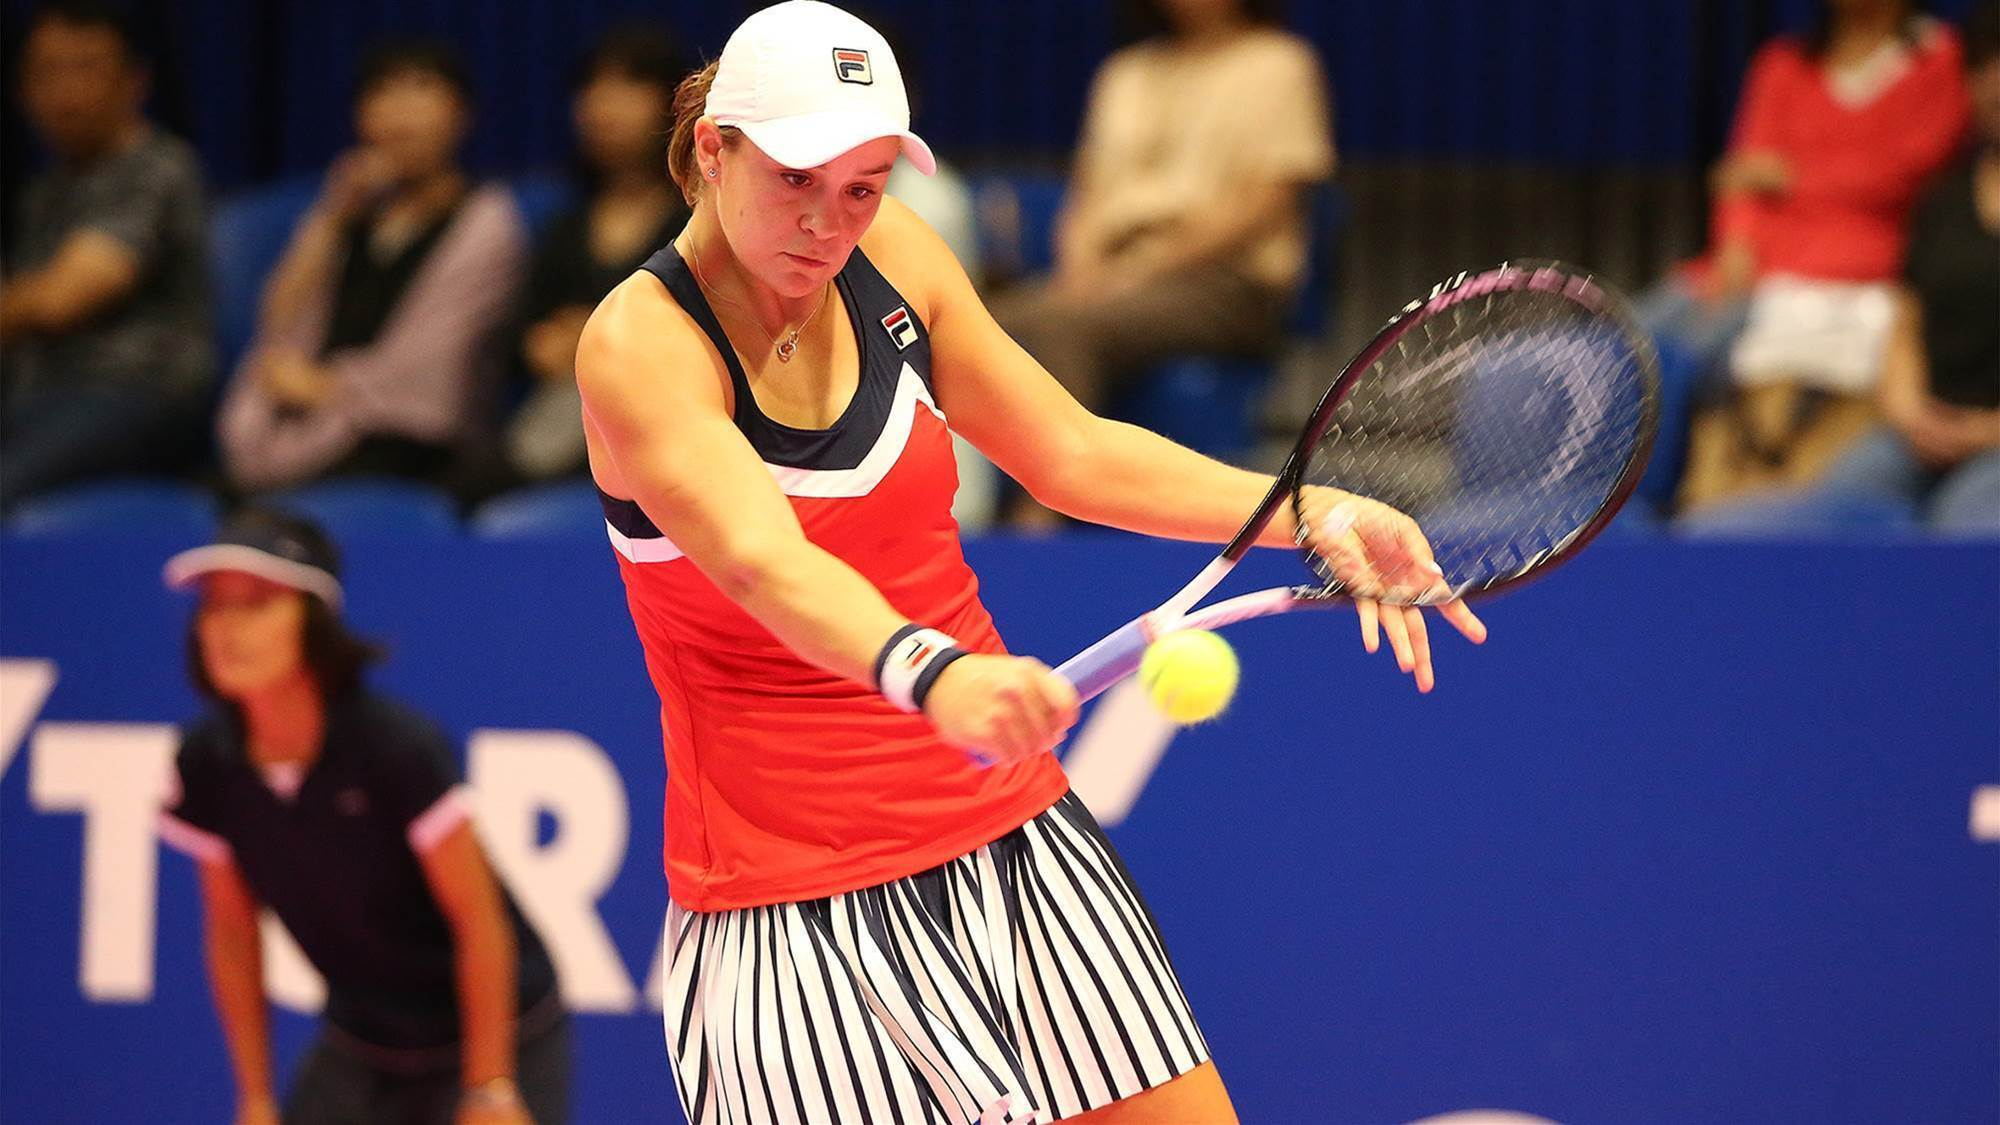 Barty takes it to Kerber